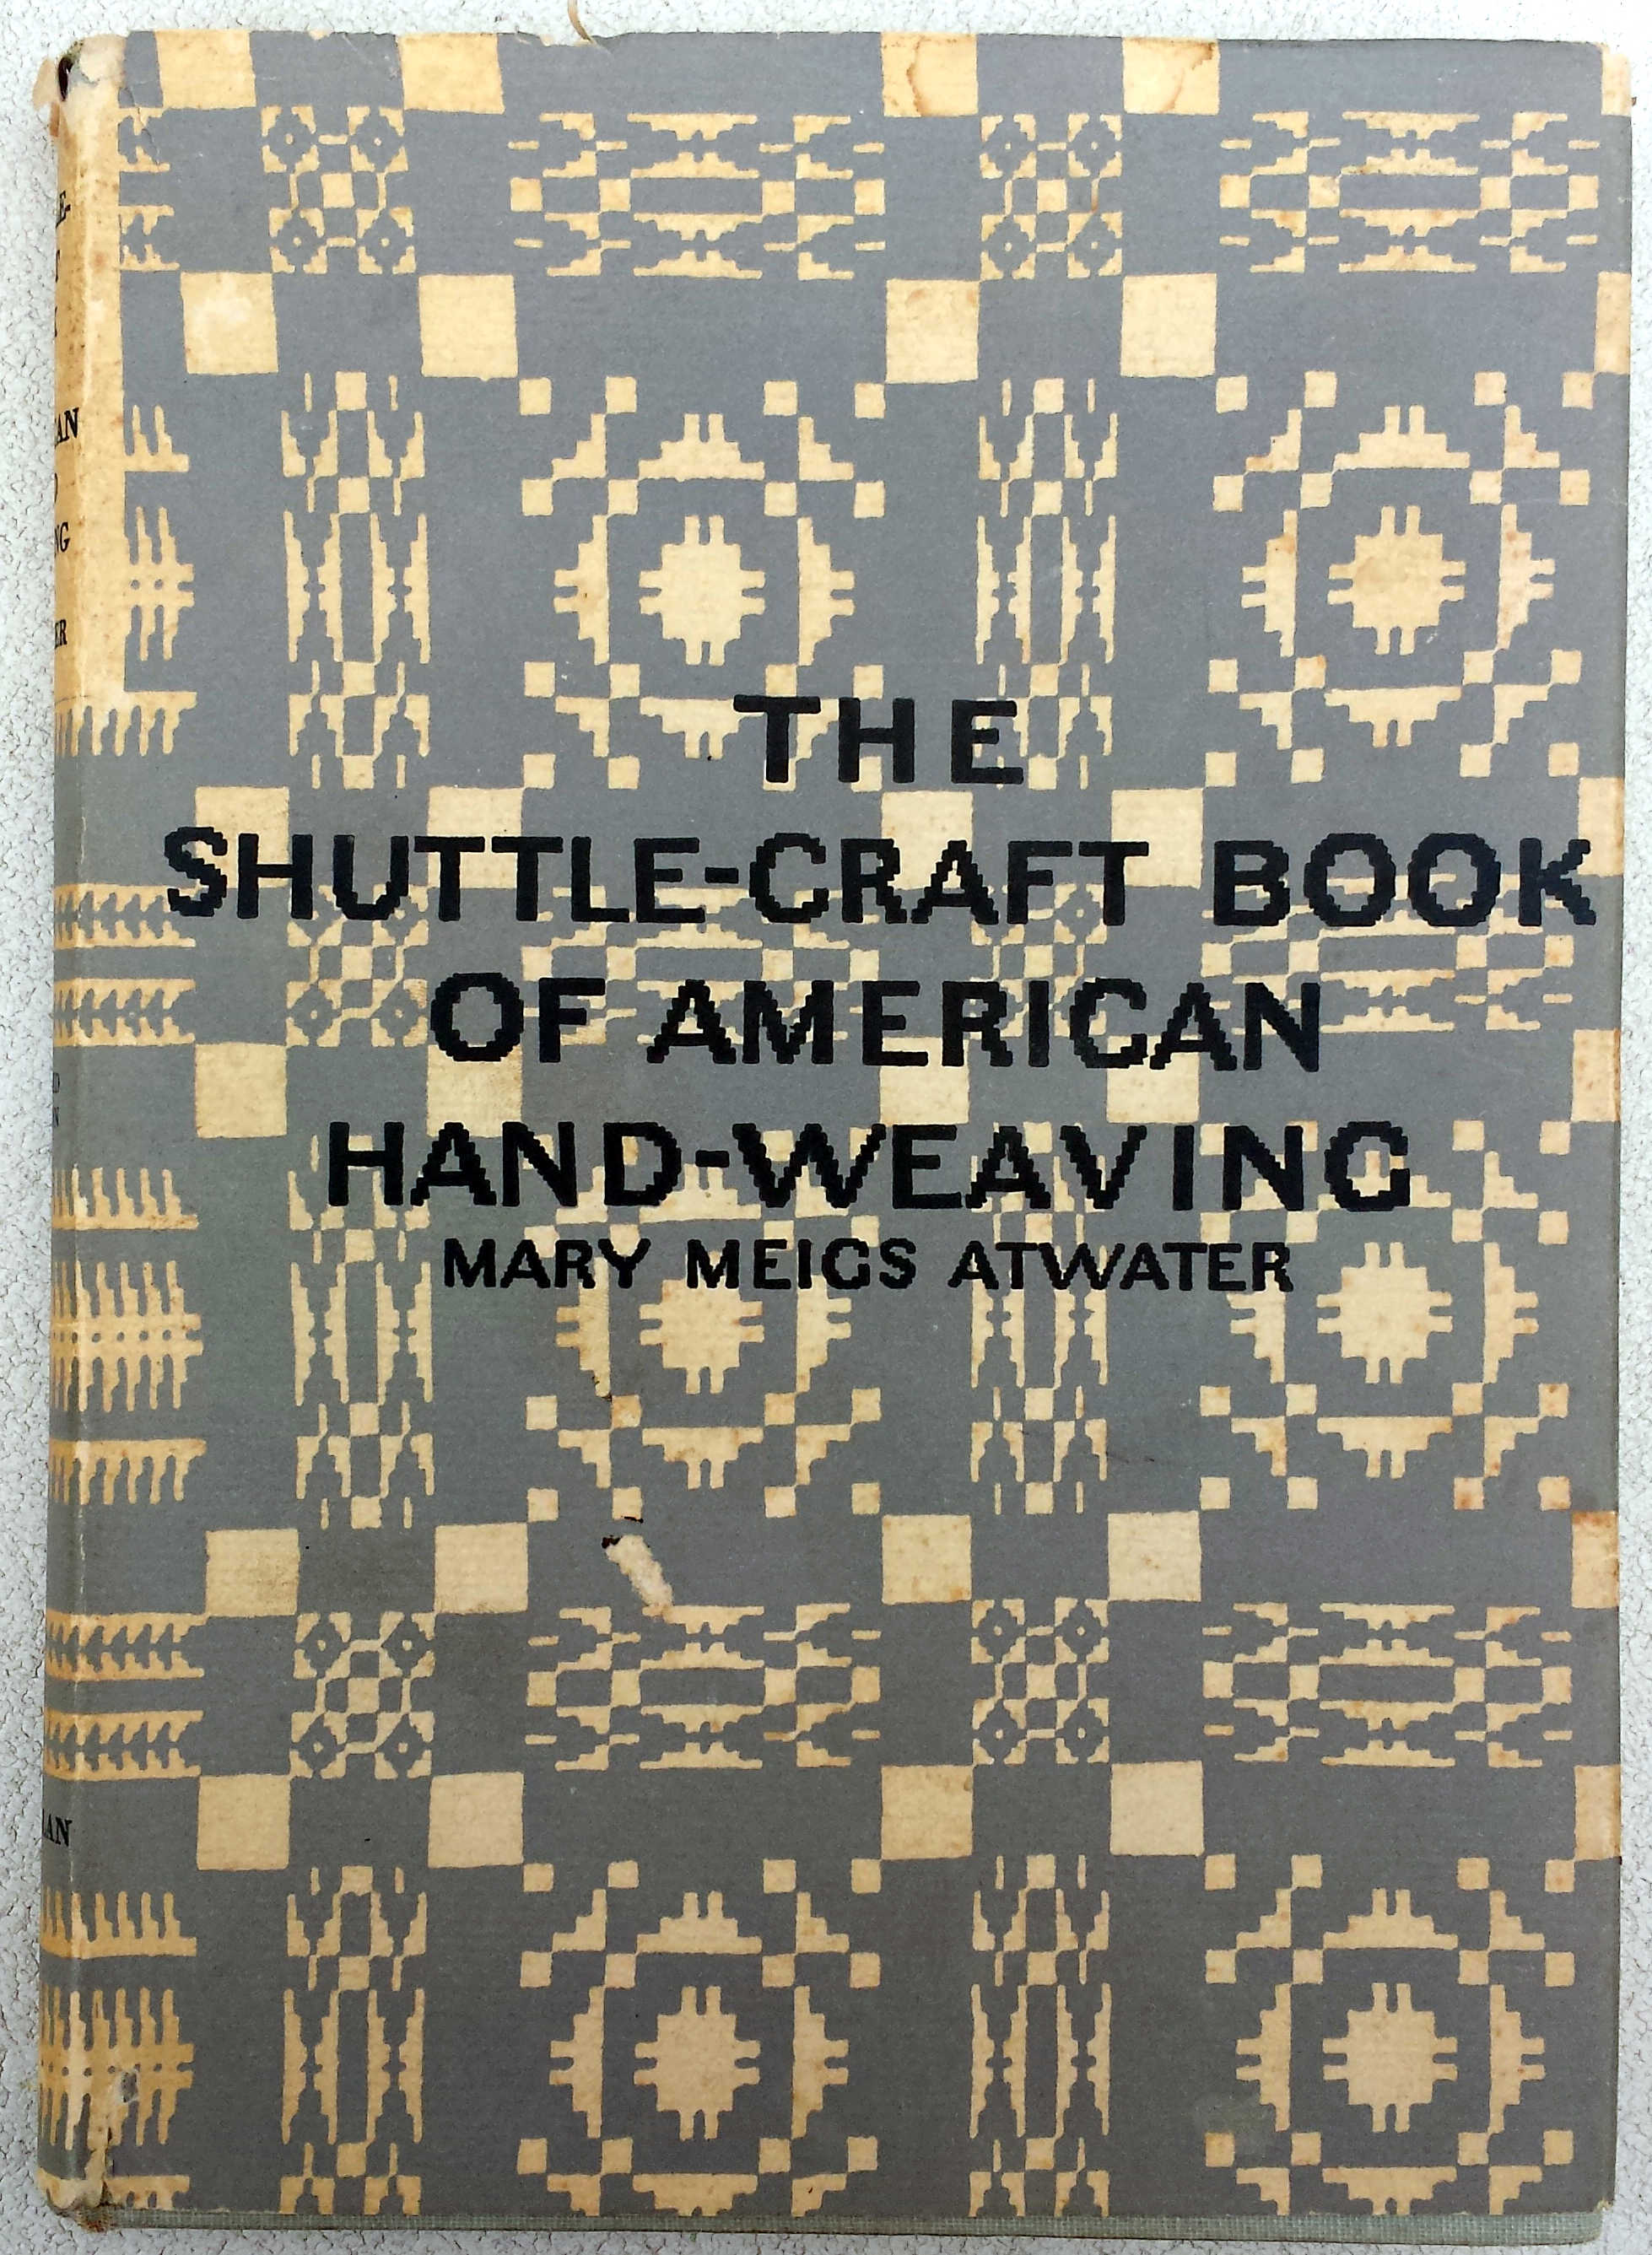 Atwater (1959) American Hand-Weaving - Crafts Draughts Loom Patterns Early